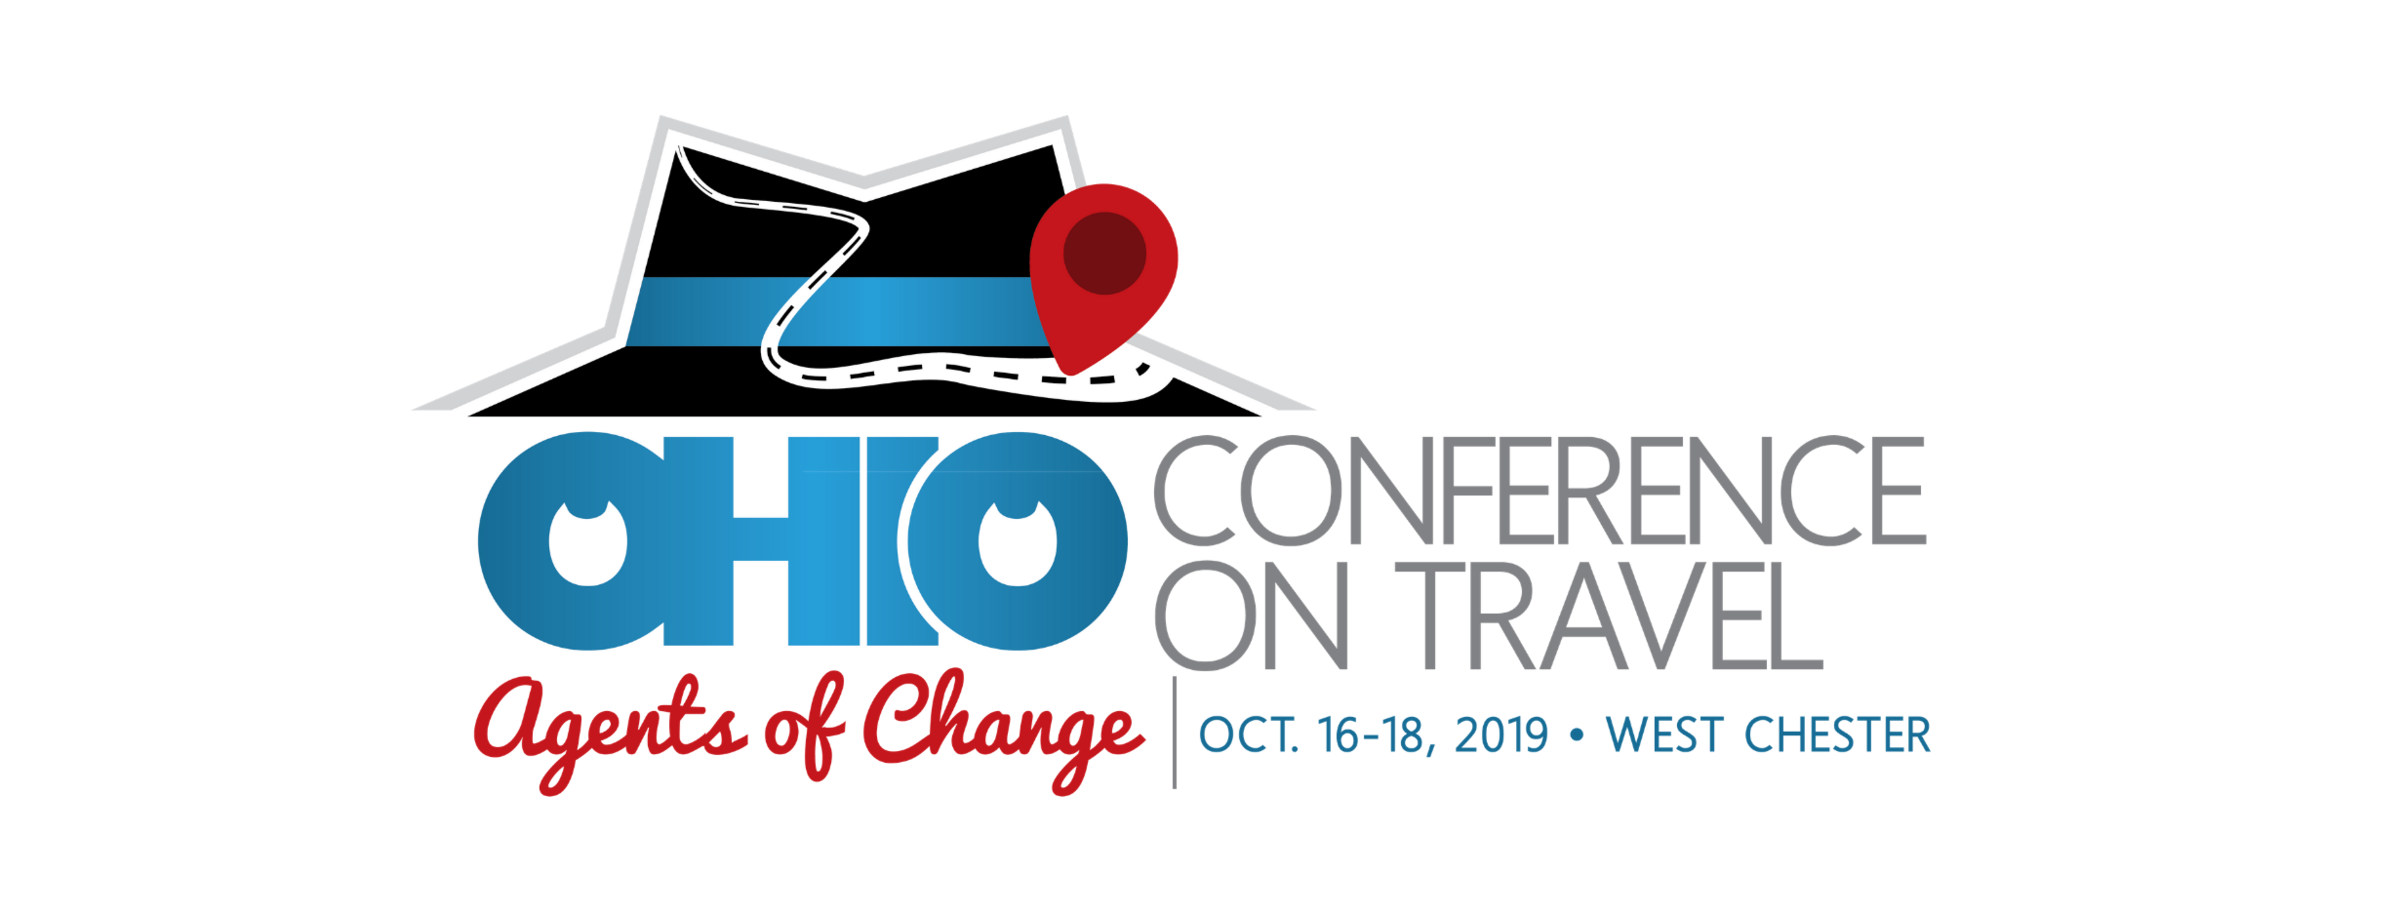 Register for the 2019 Ohio Conference on Travel